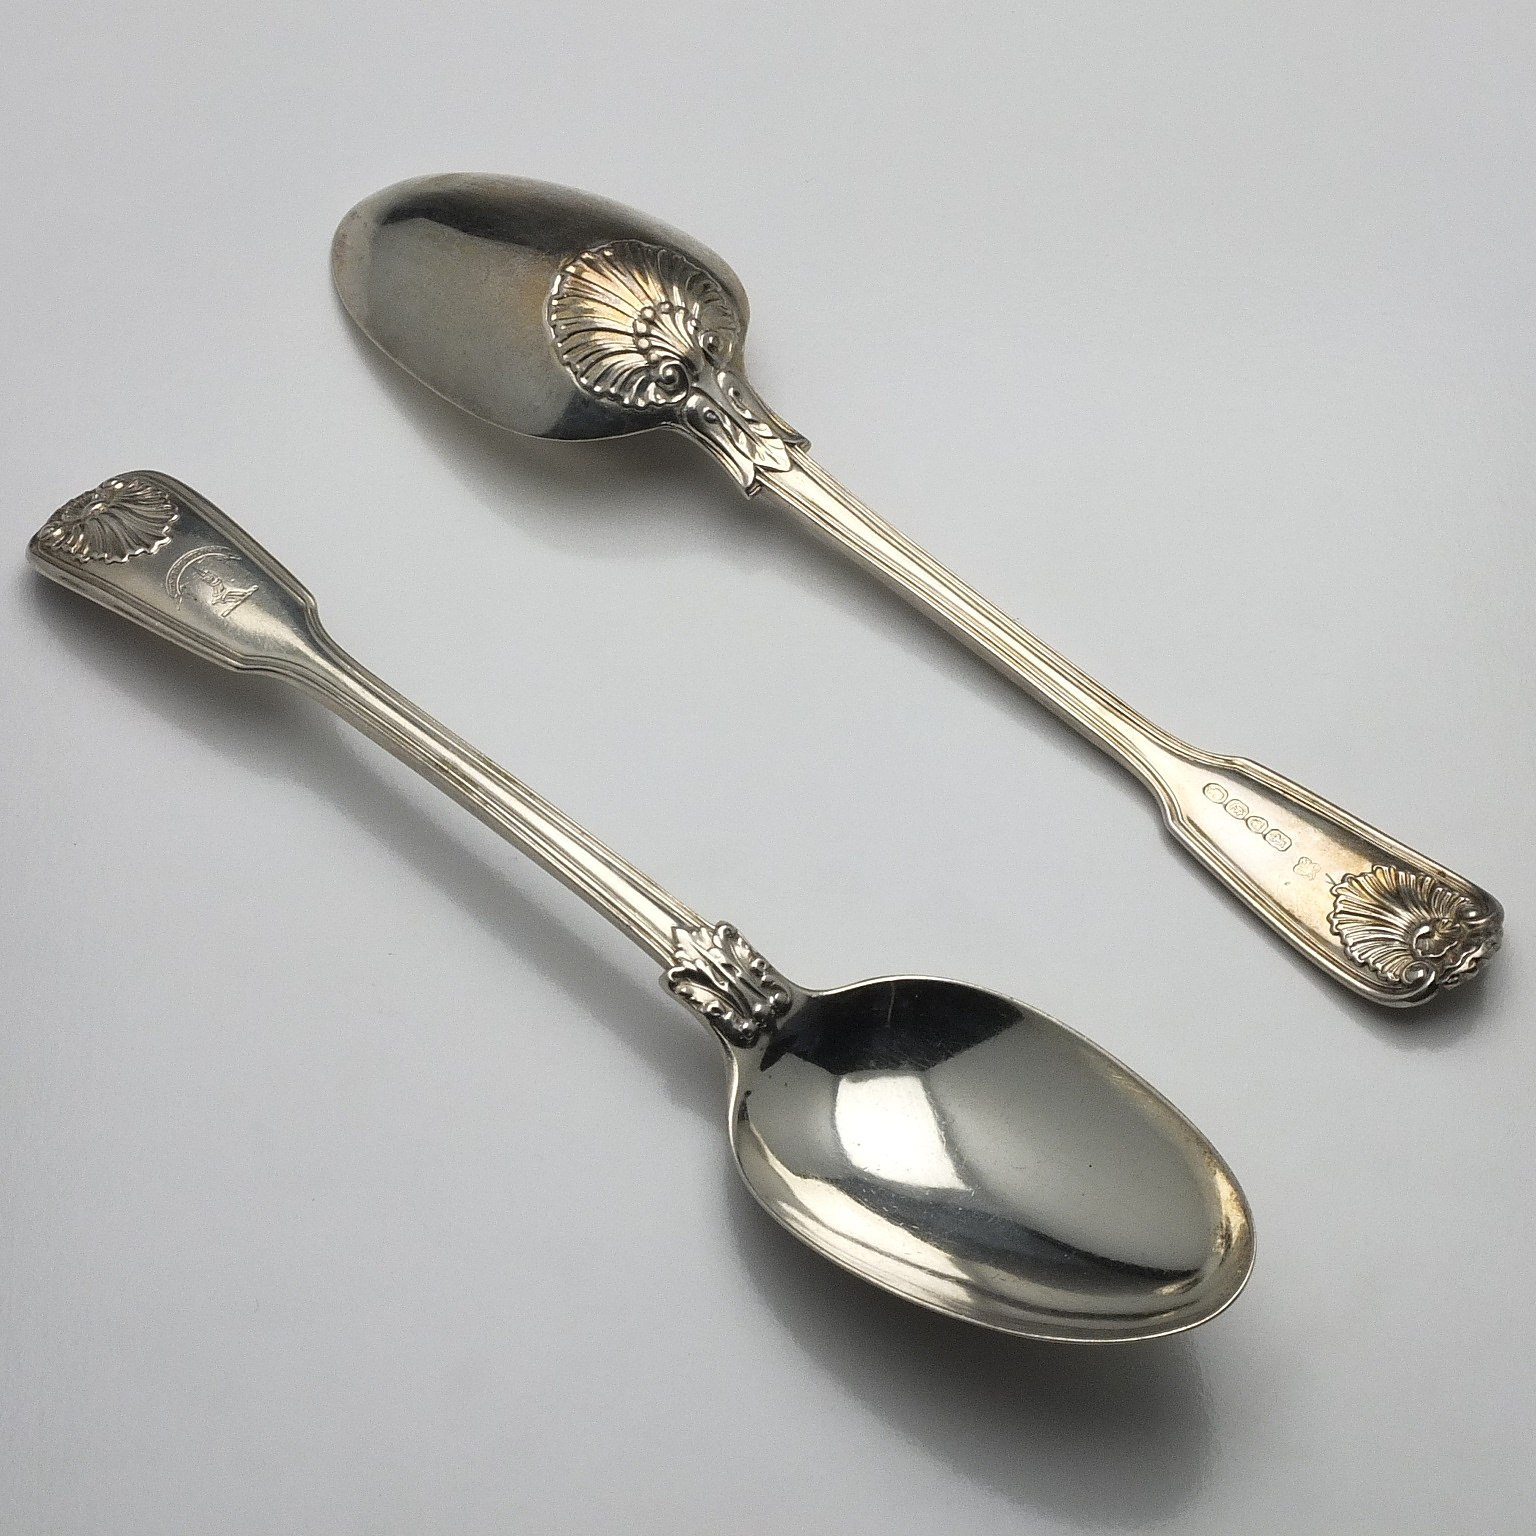 'Pair of Victorian Crested Sterling Silver Table Spoons Mary Chawner & George W Adams London 1838'